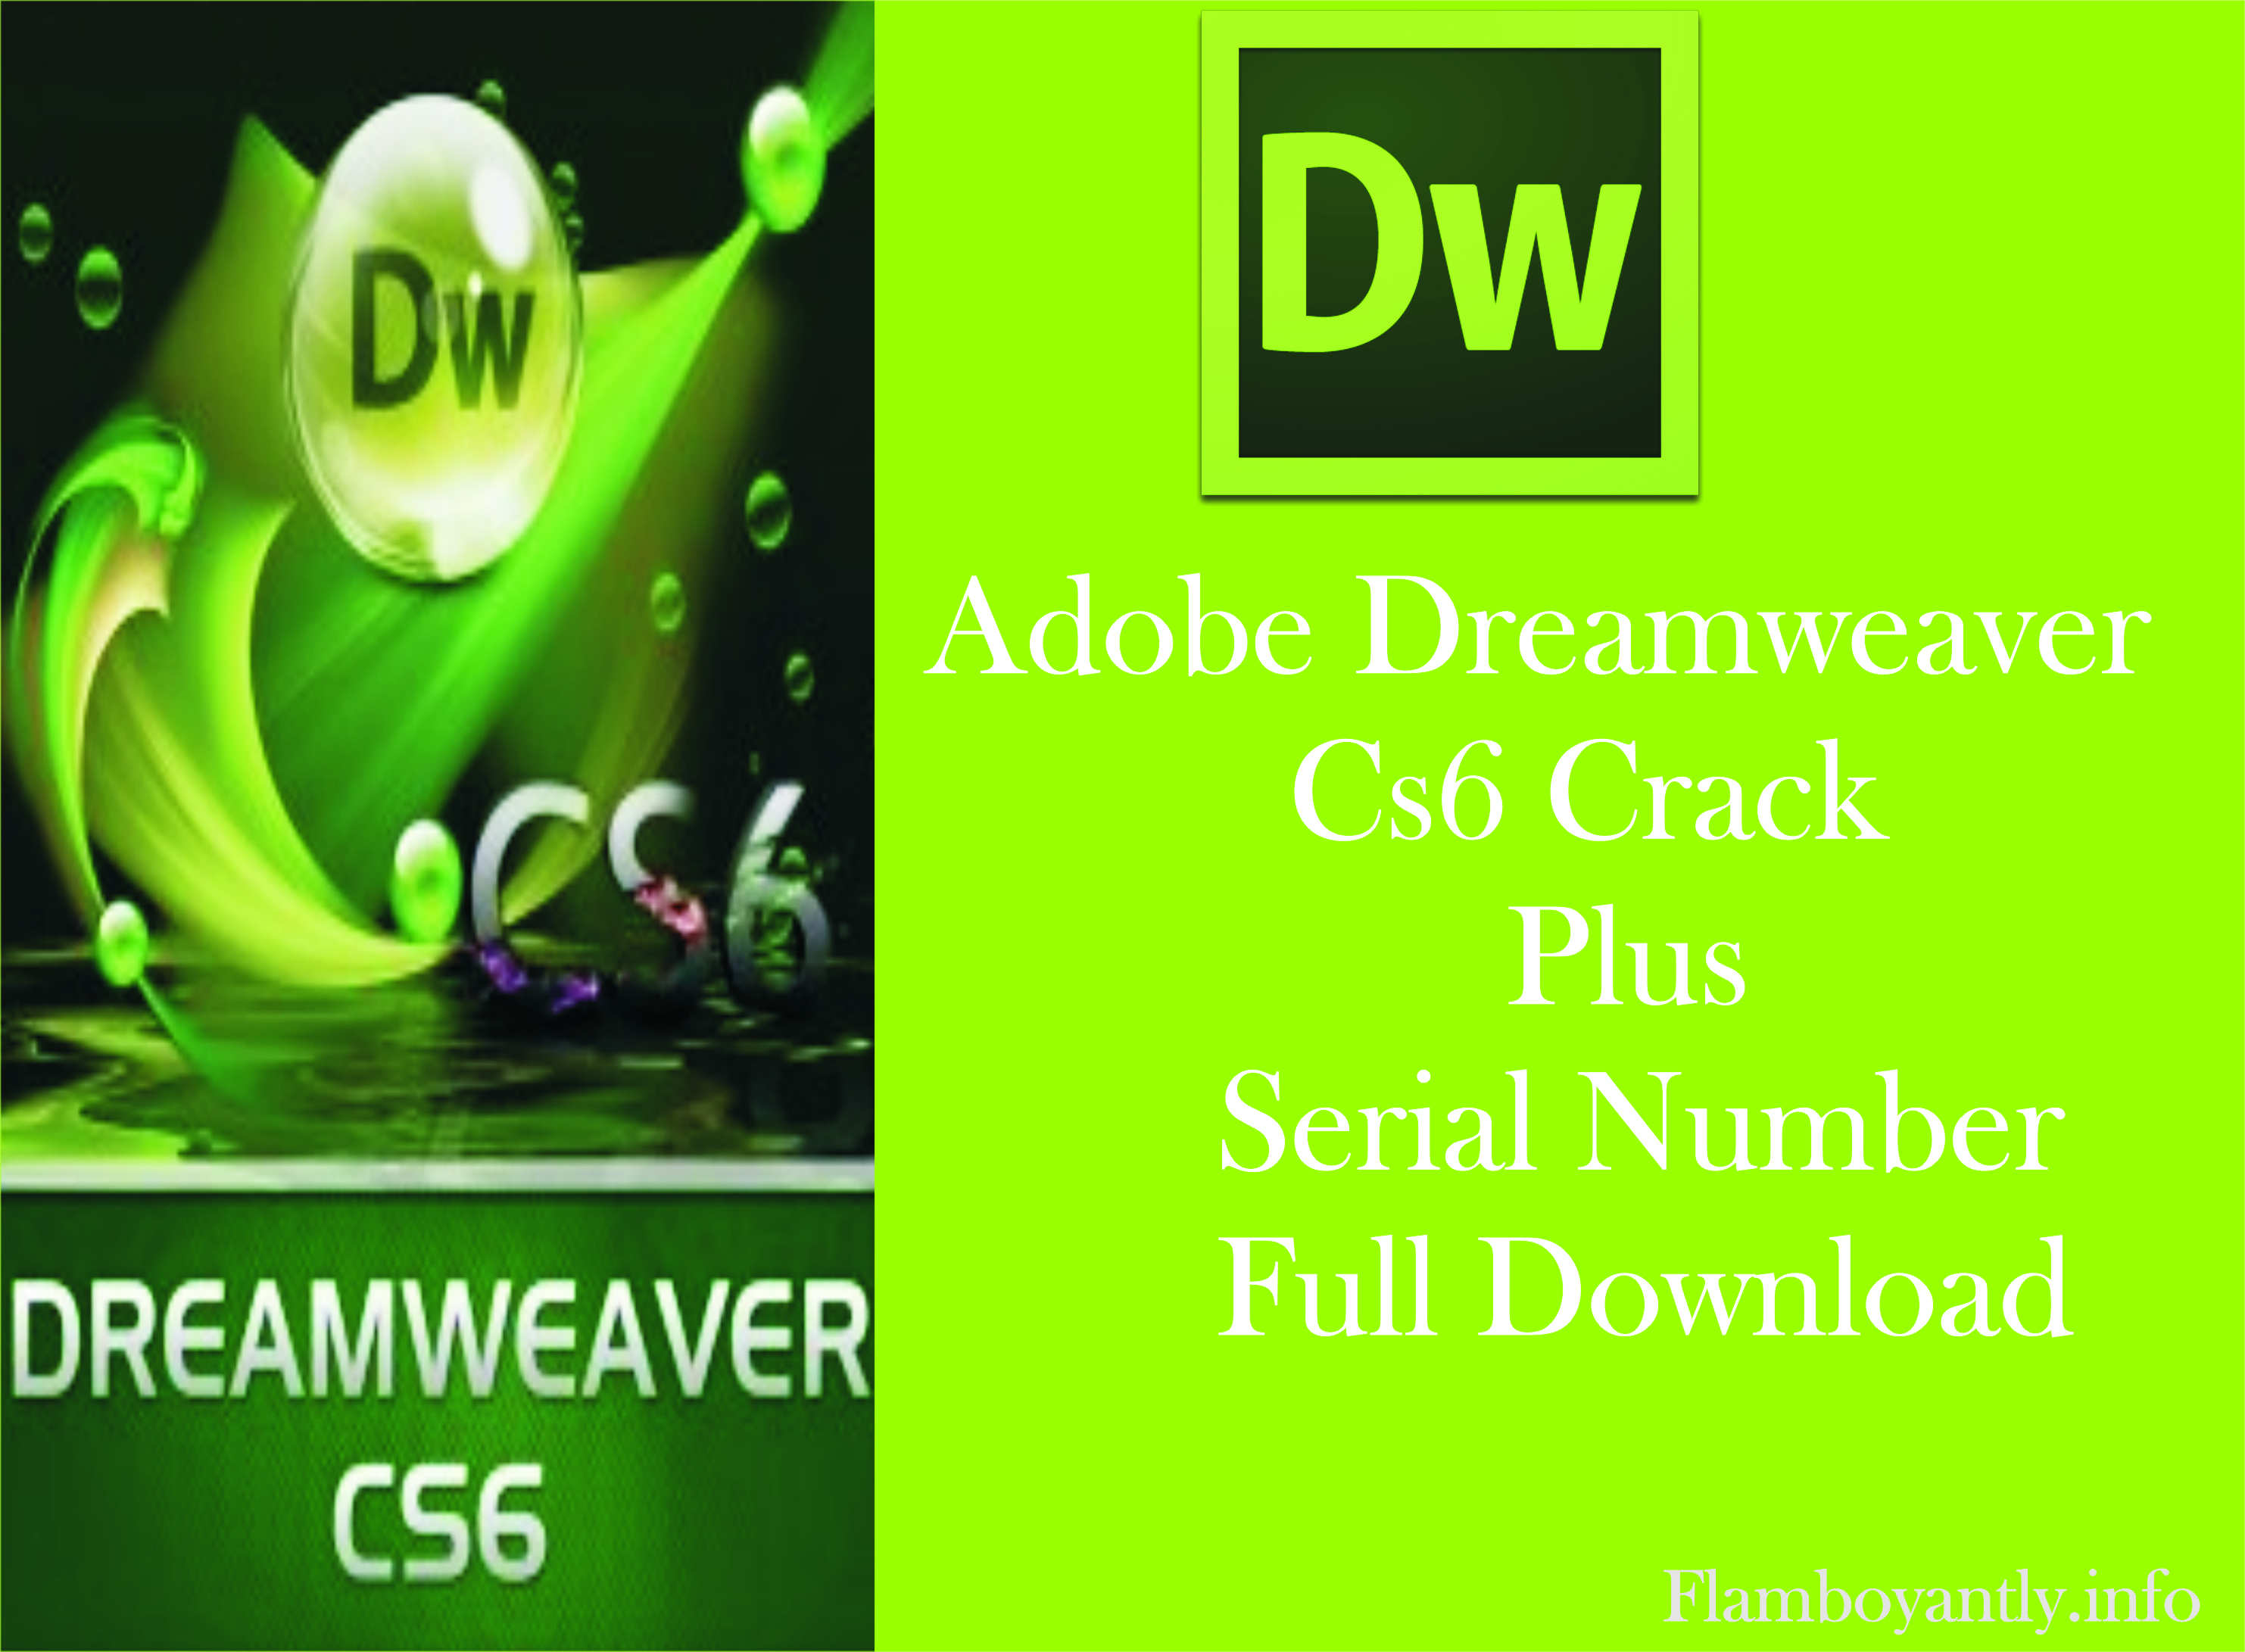 Adobe Dreamweaver CS6 Crack Plus Serial Number Full Download